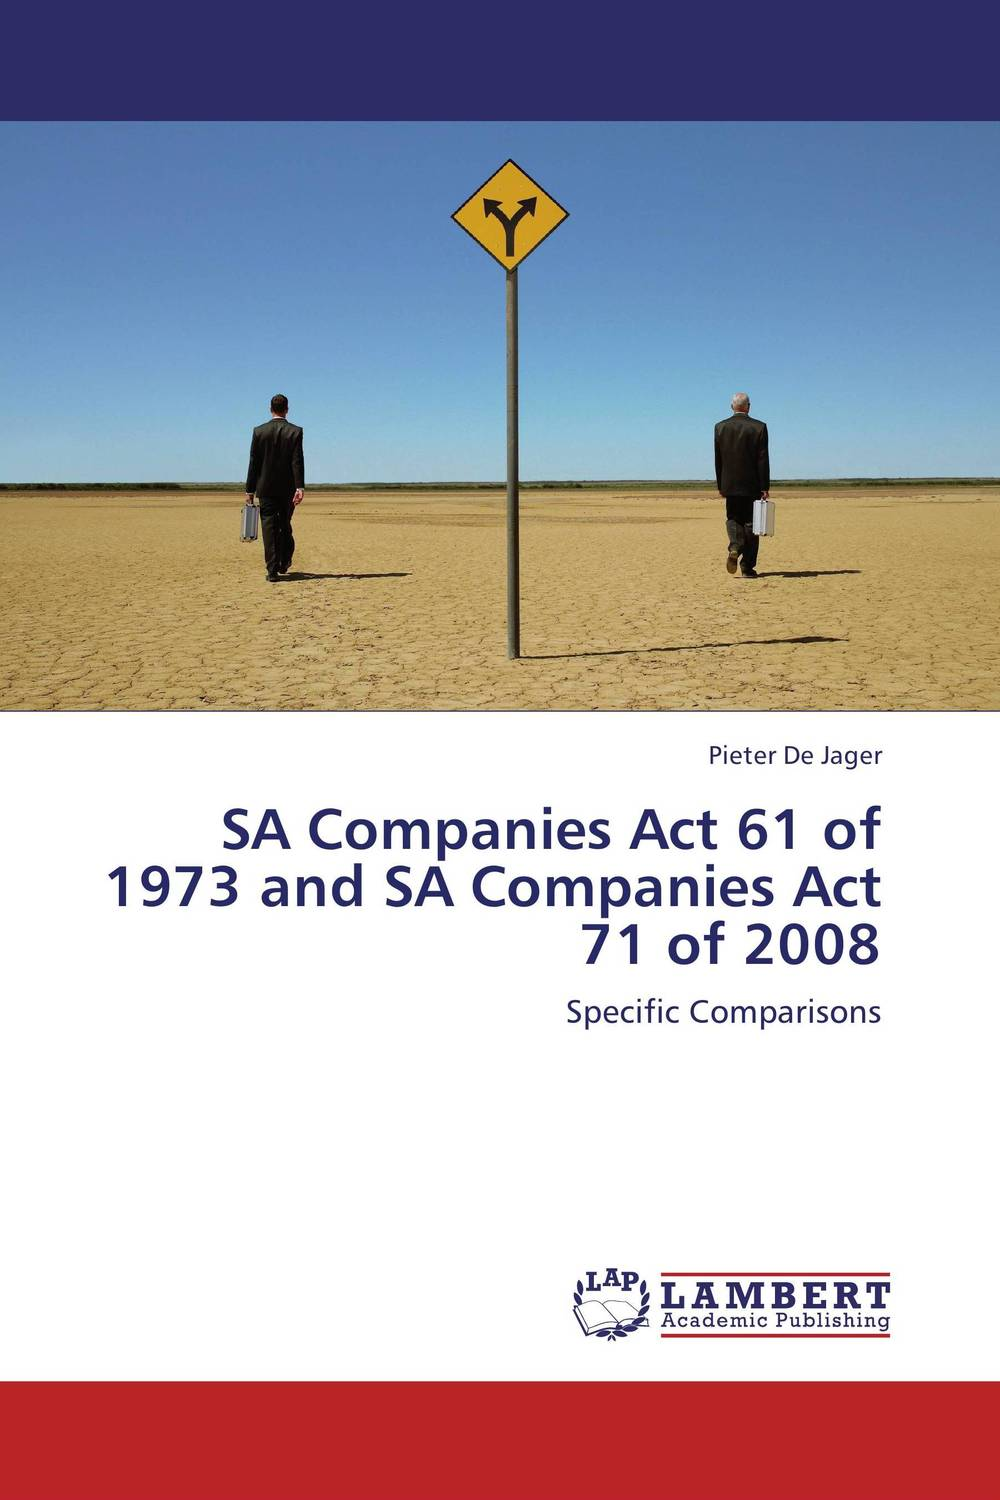 SA Companies Act 61 of 1973 and SA Companies Act 71 of 2008 corporate governance and firm value